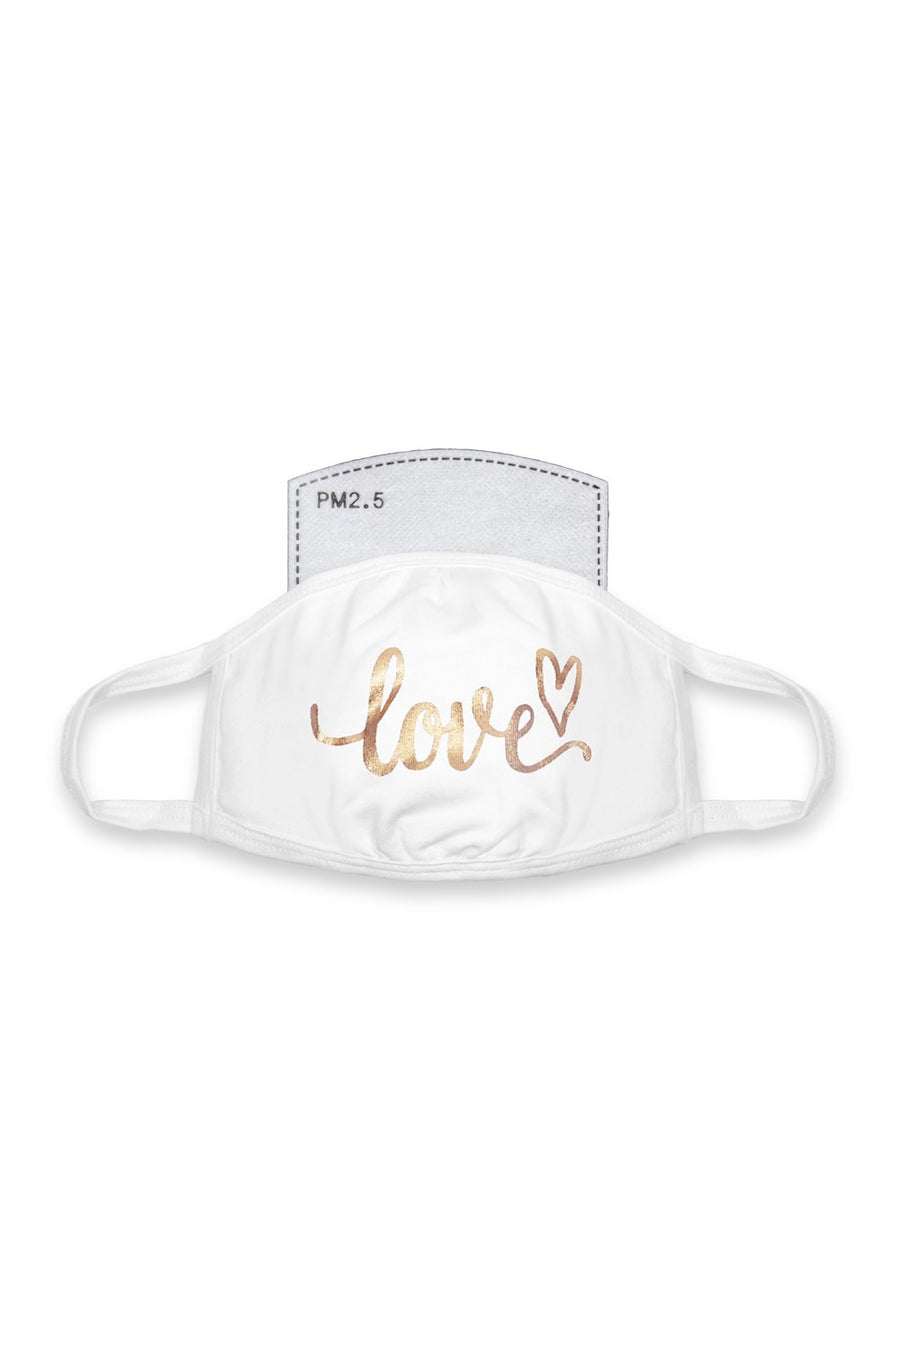 Love Cursive Mask White/Gold